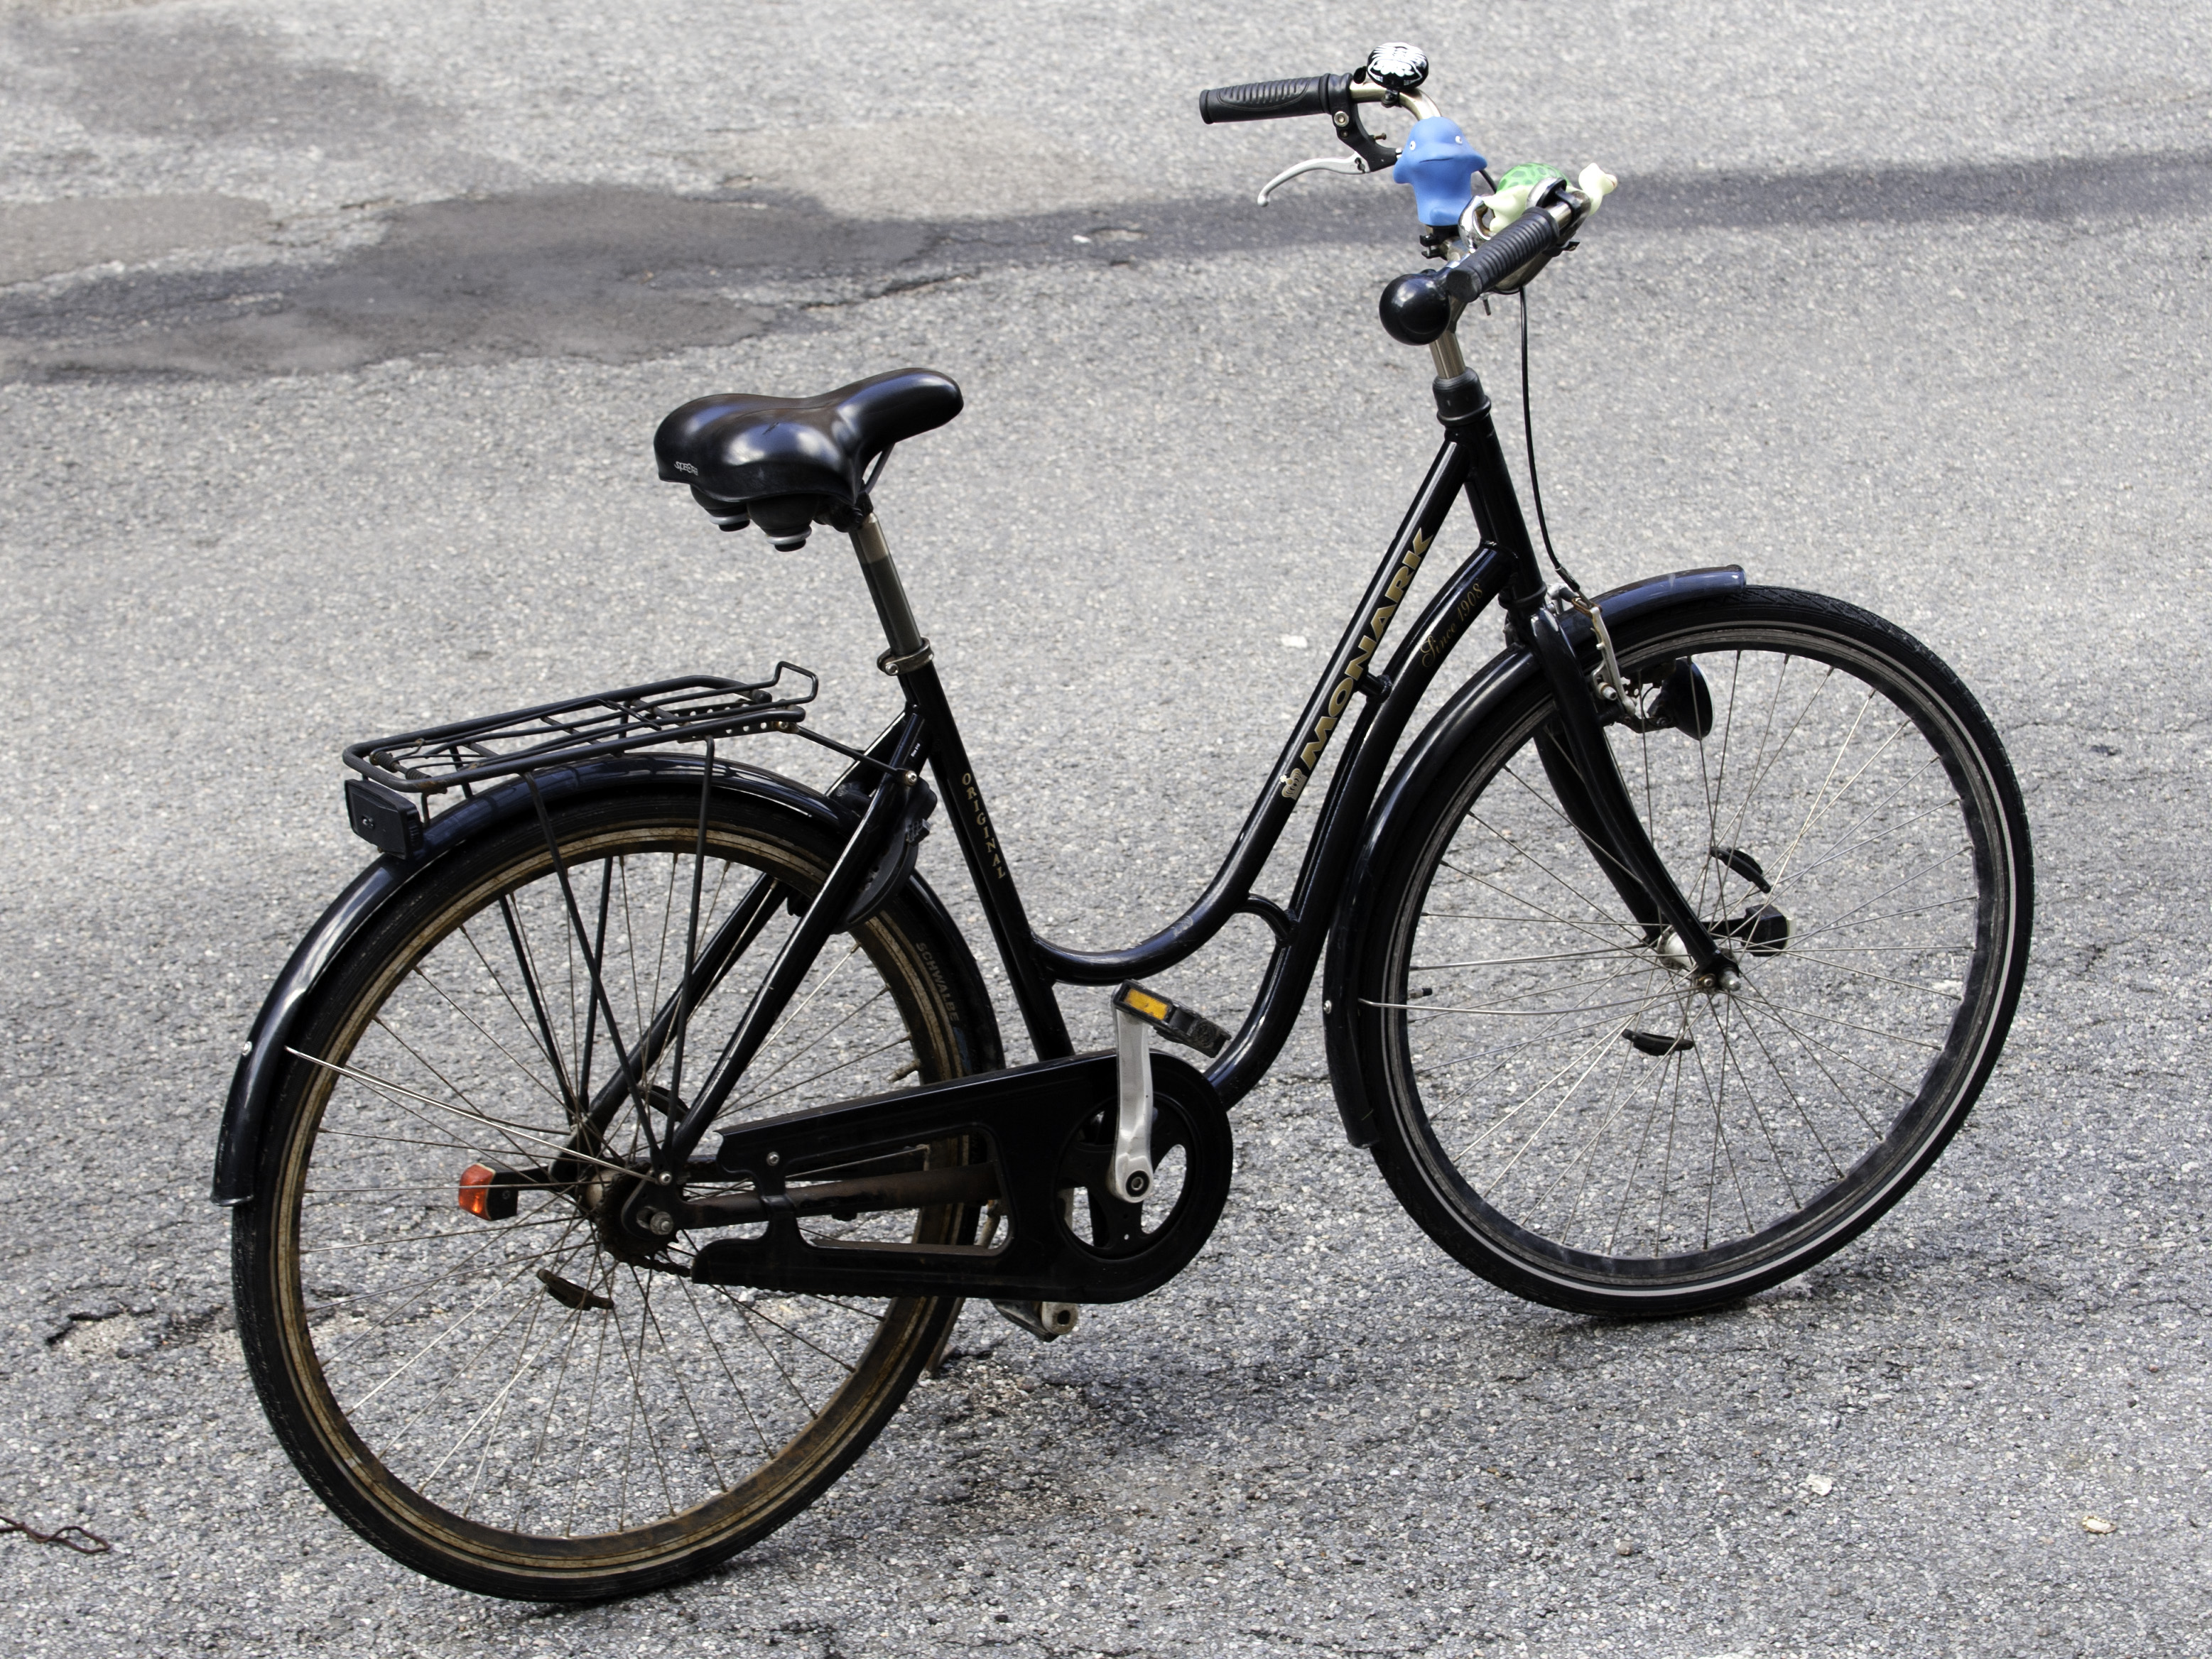 Bike Types Pdf Bicycles can be categorized by